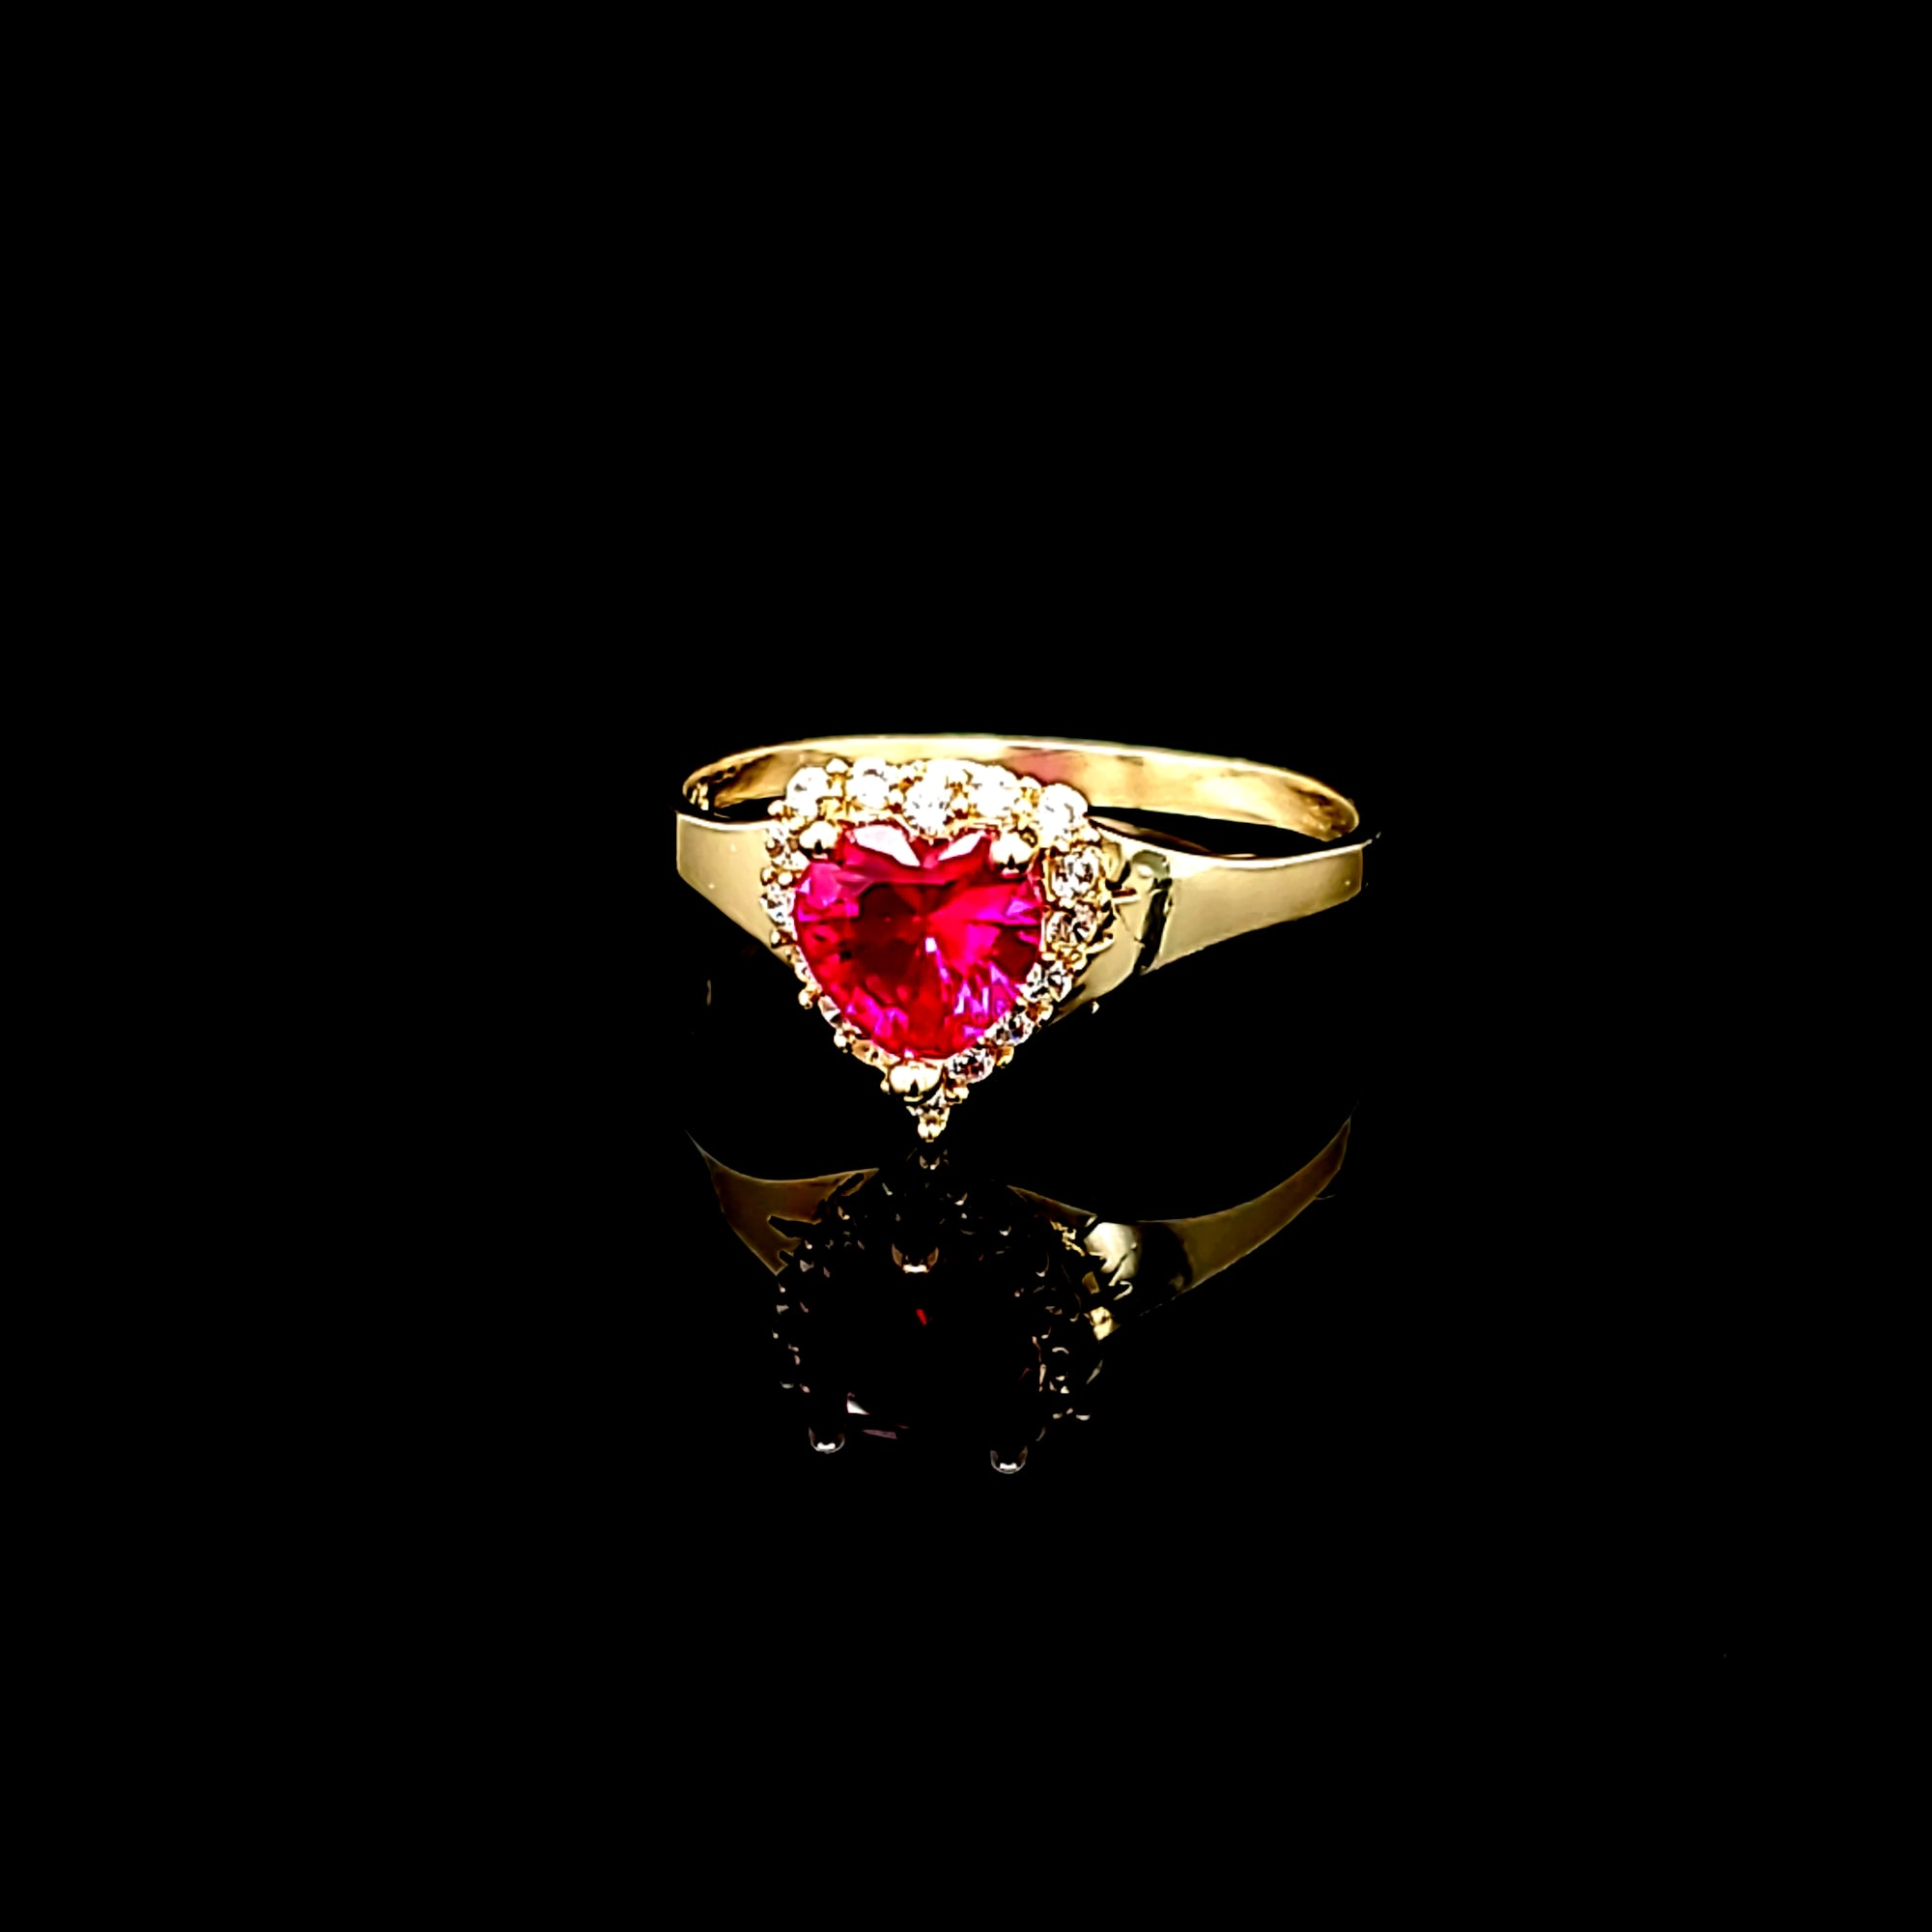 Solid 14K Gold Heart Ring For Women